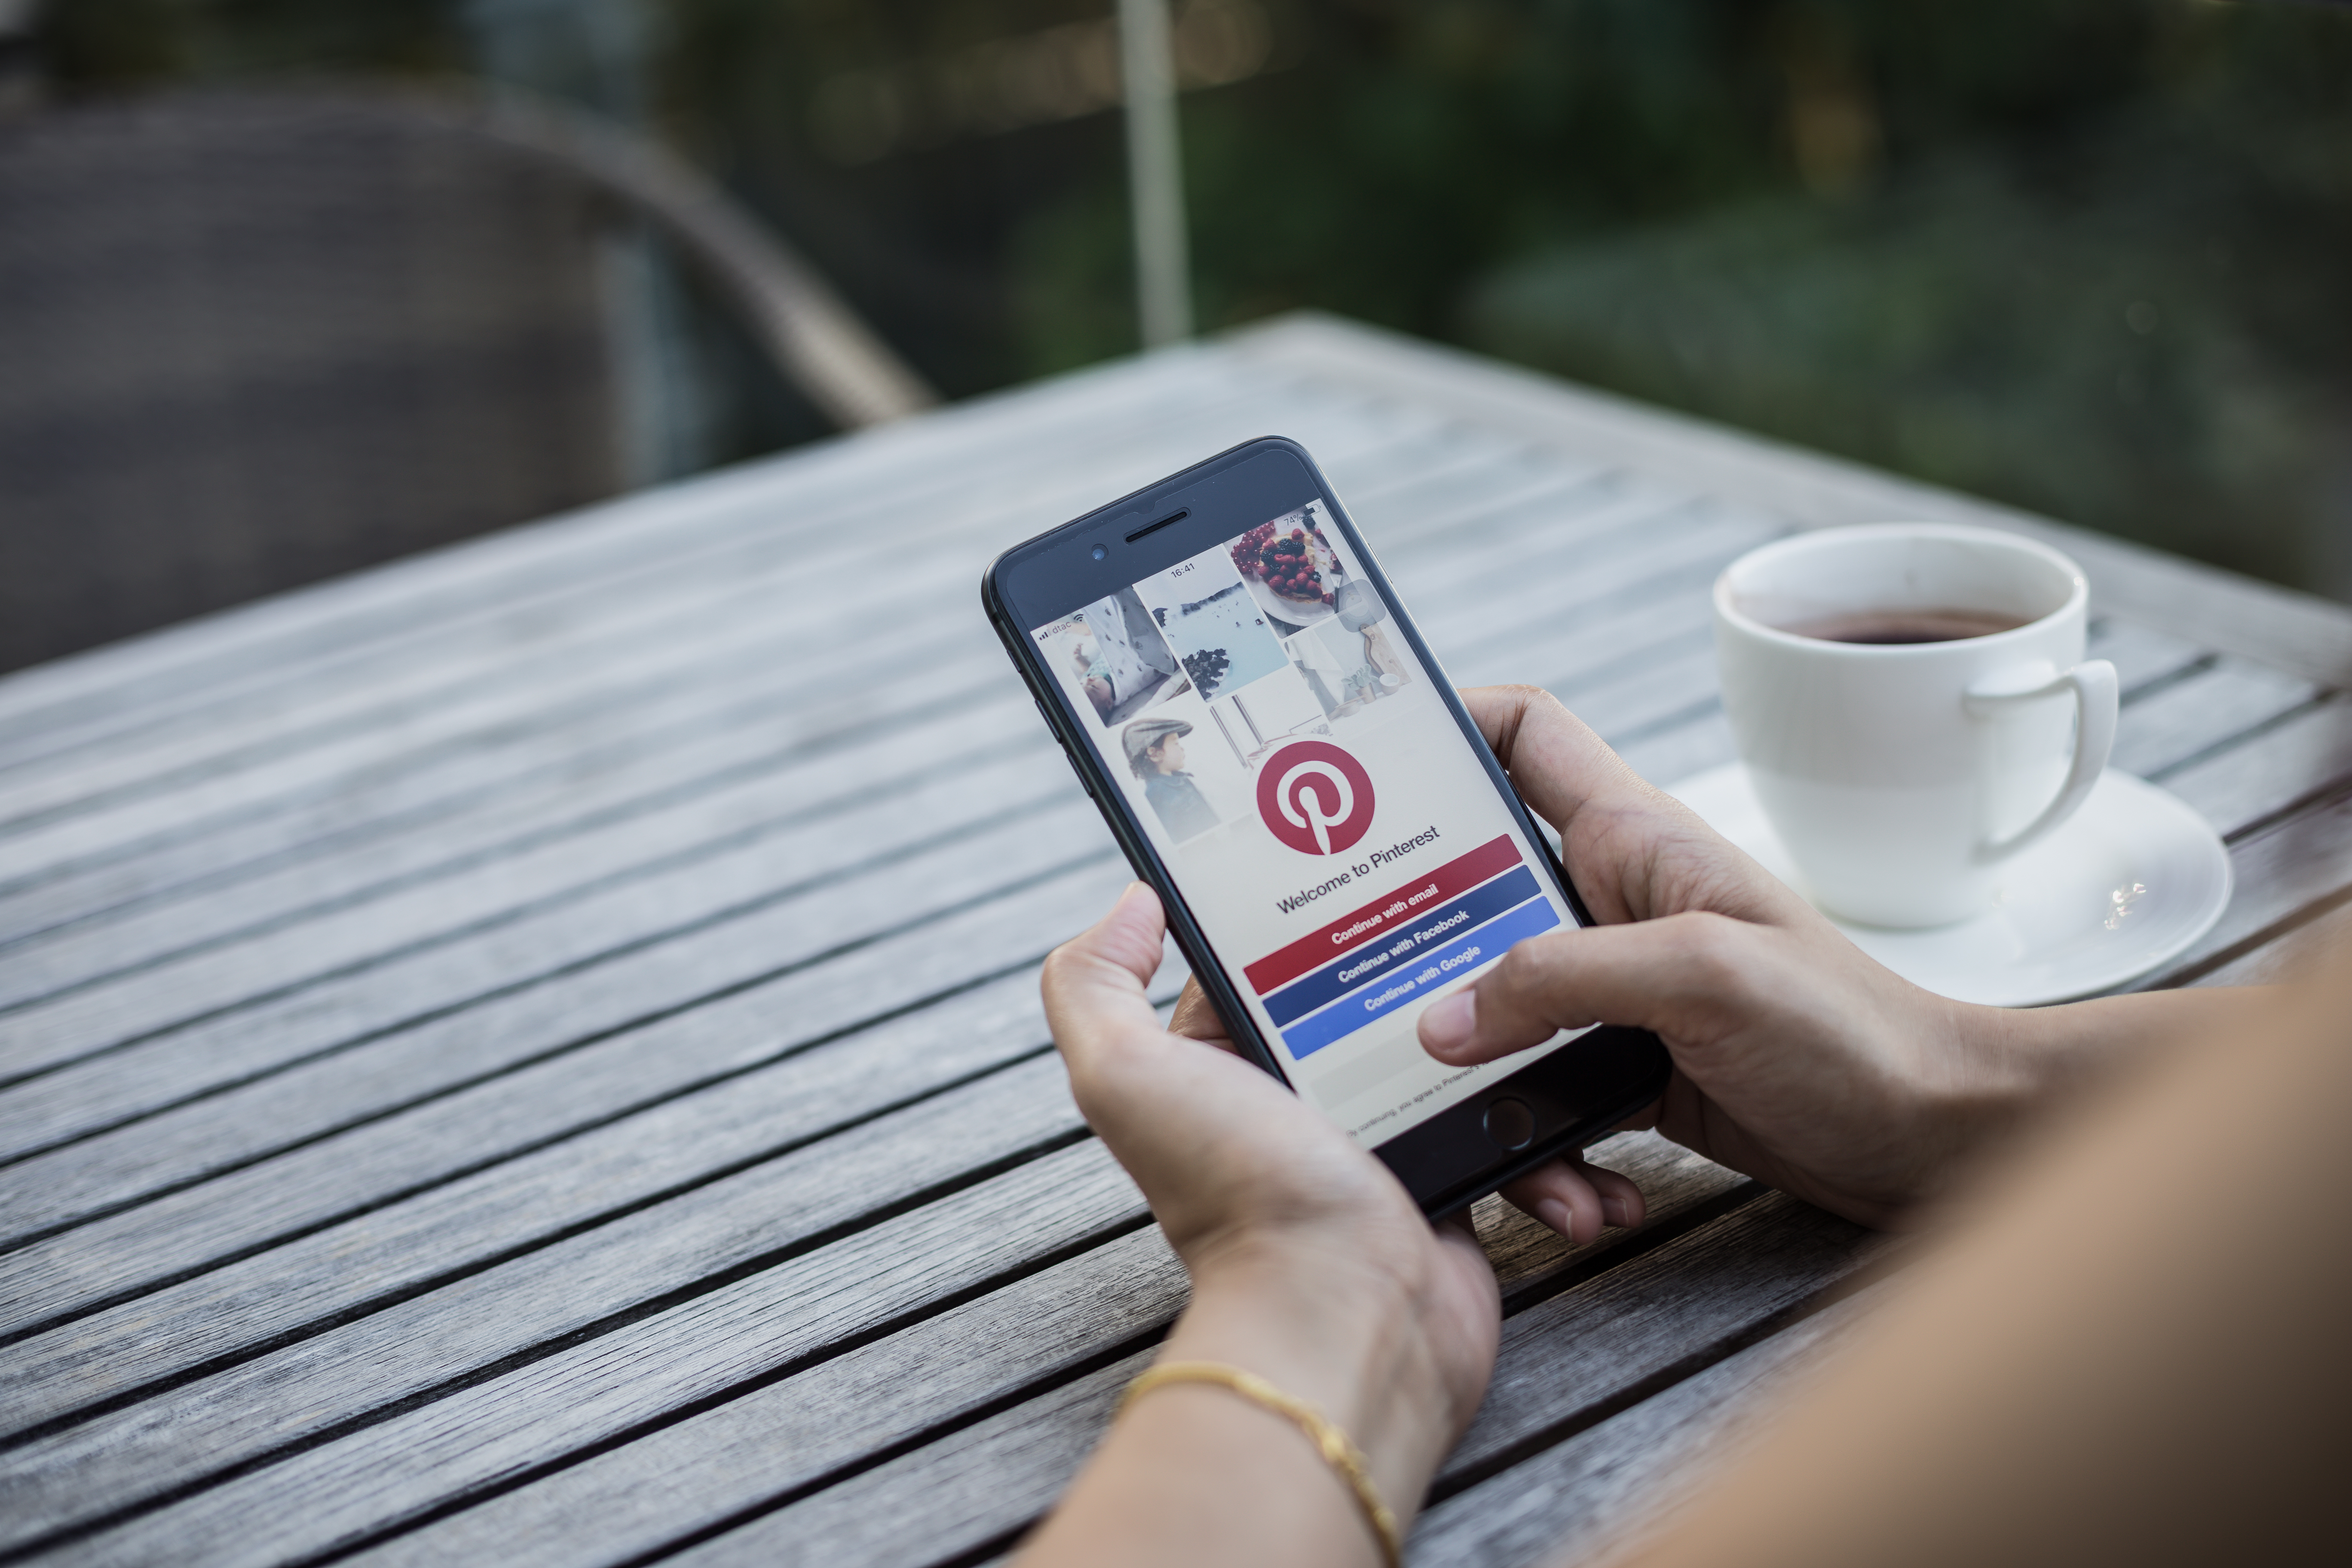 Apple-iPhone-8-Plus-showing-Pinterest-application-on-mobile.-It-was-held-by-woman-hand-in-cafe-shop.-958110282_5472x3648